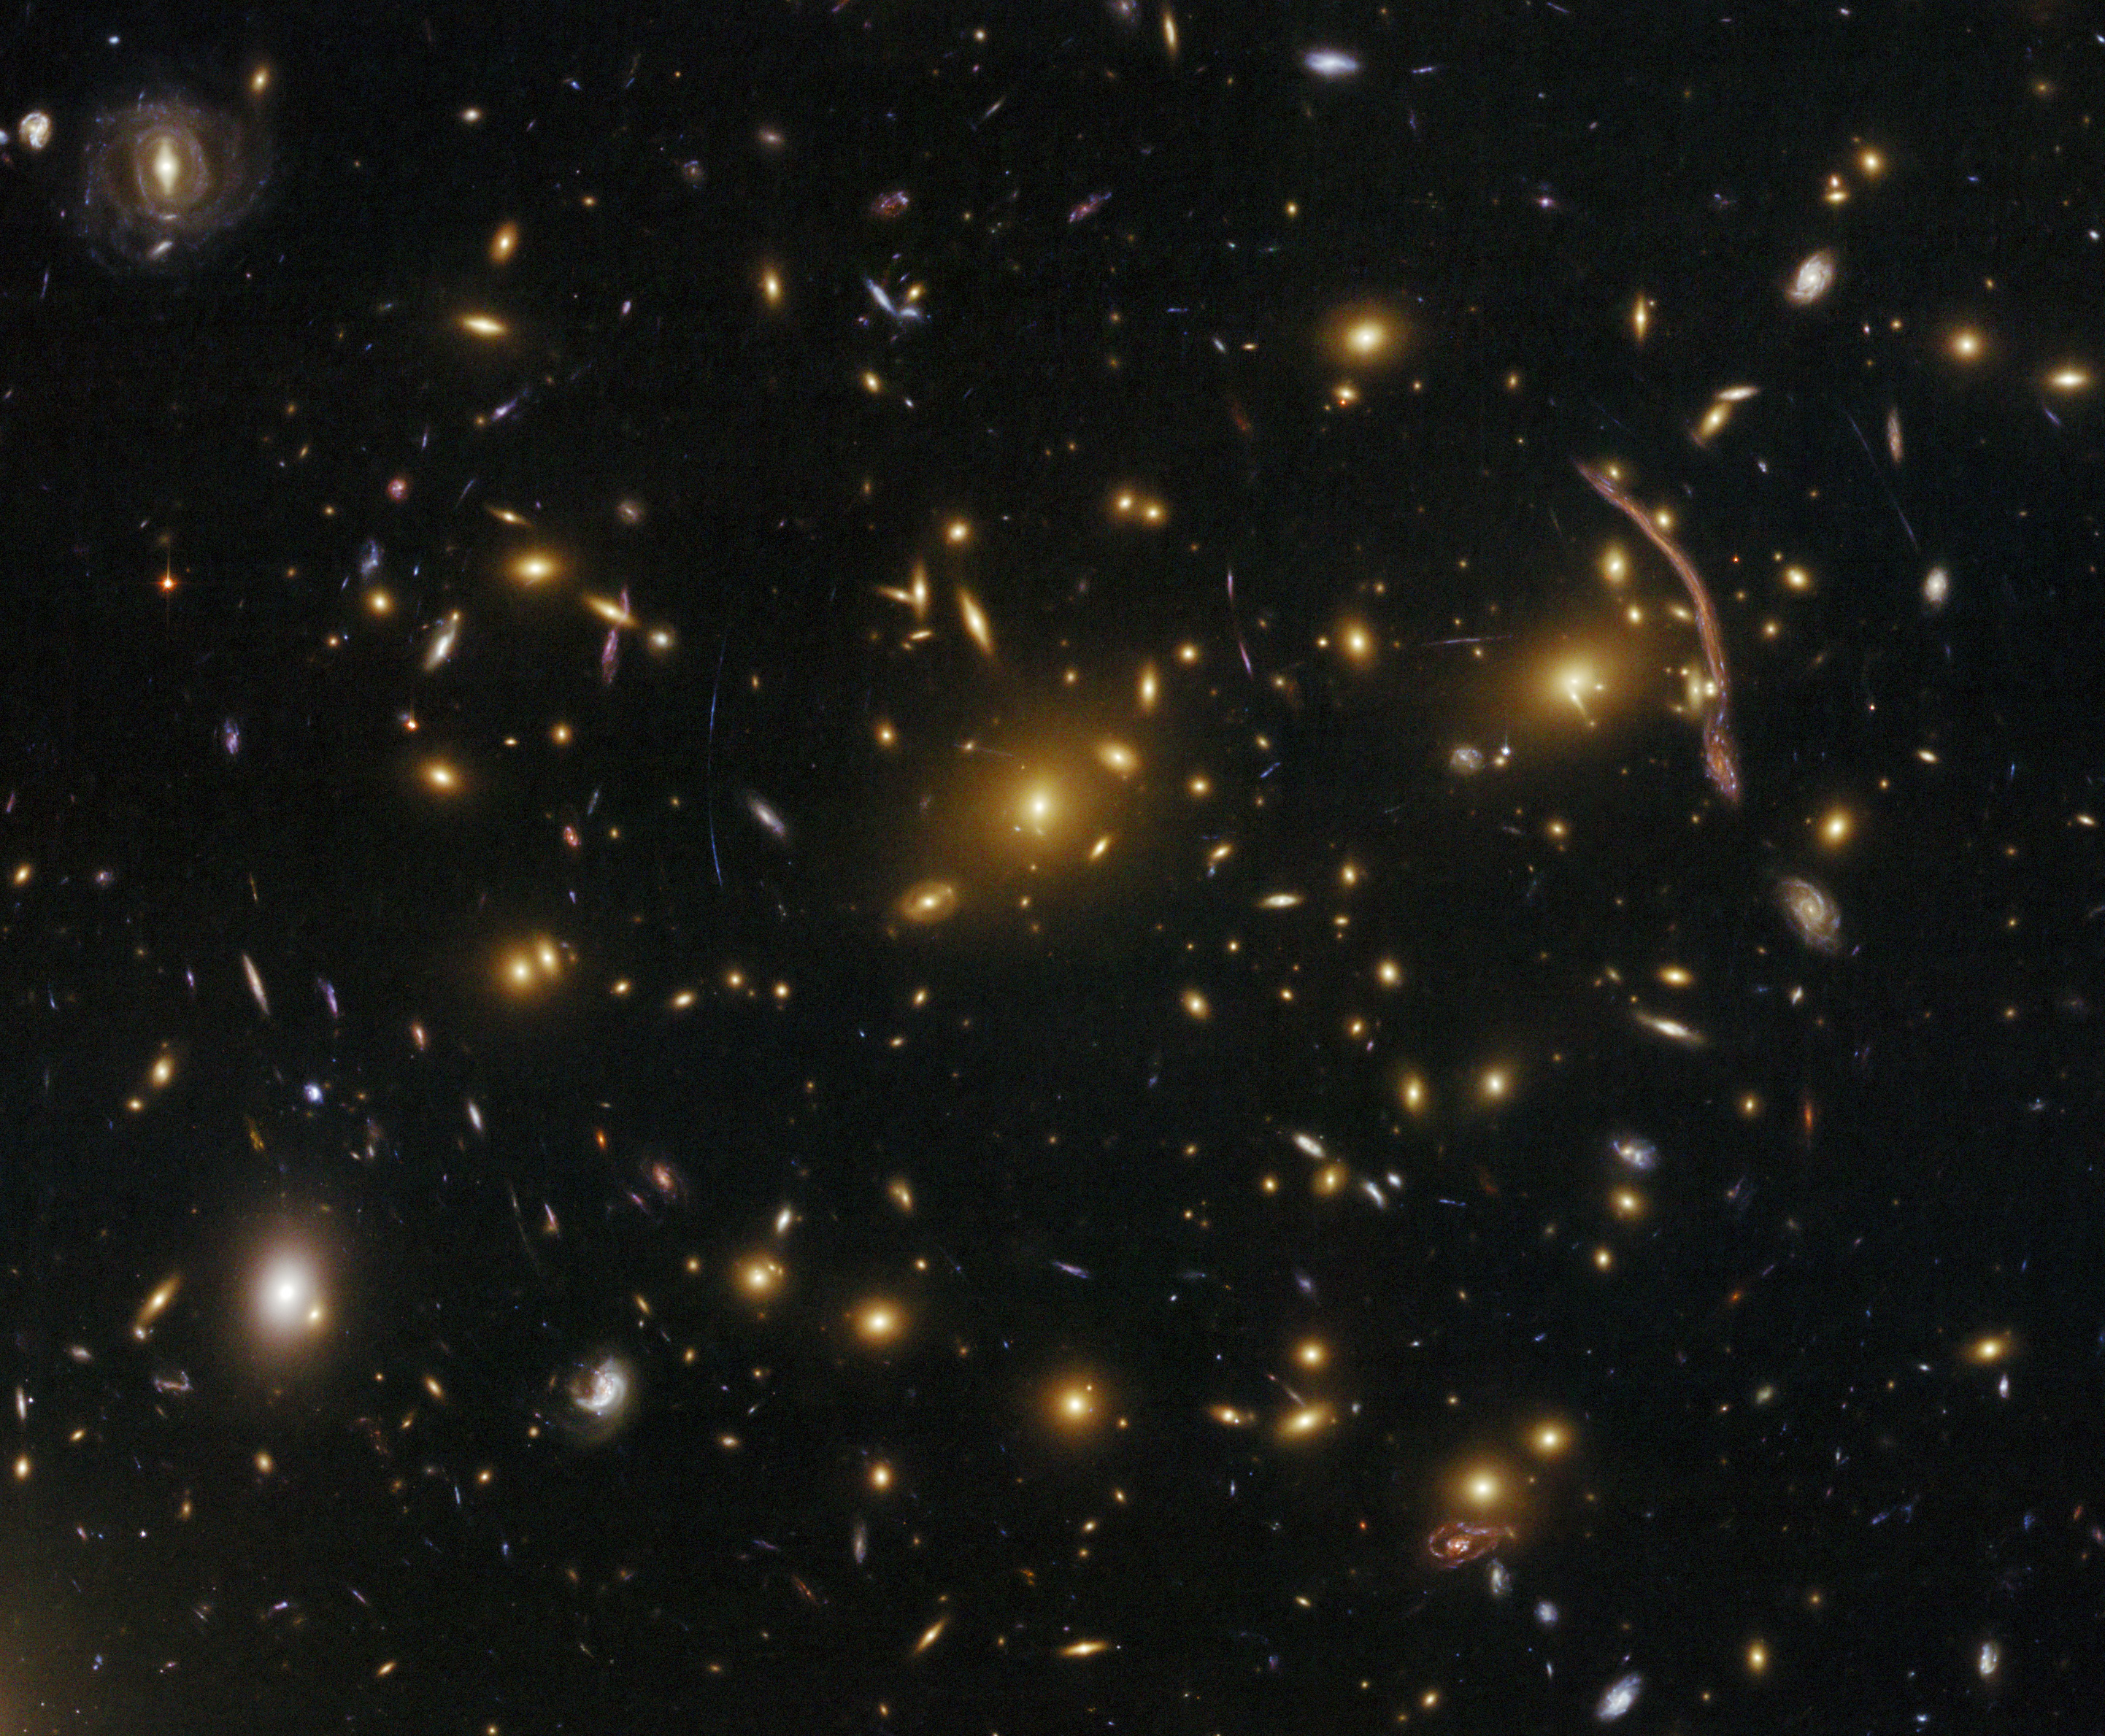 File:Gravitational lensing in the galaxy cluster Abell 370 ...